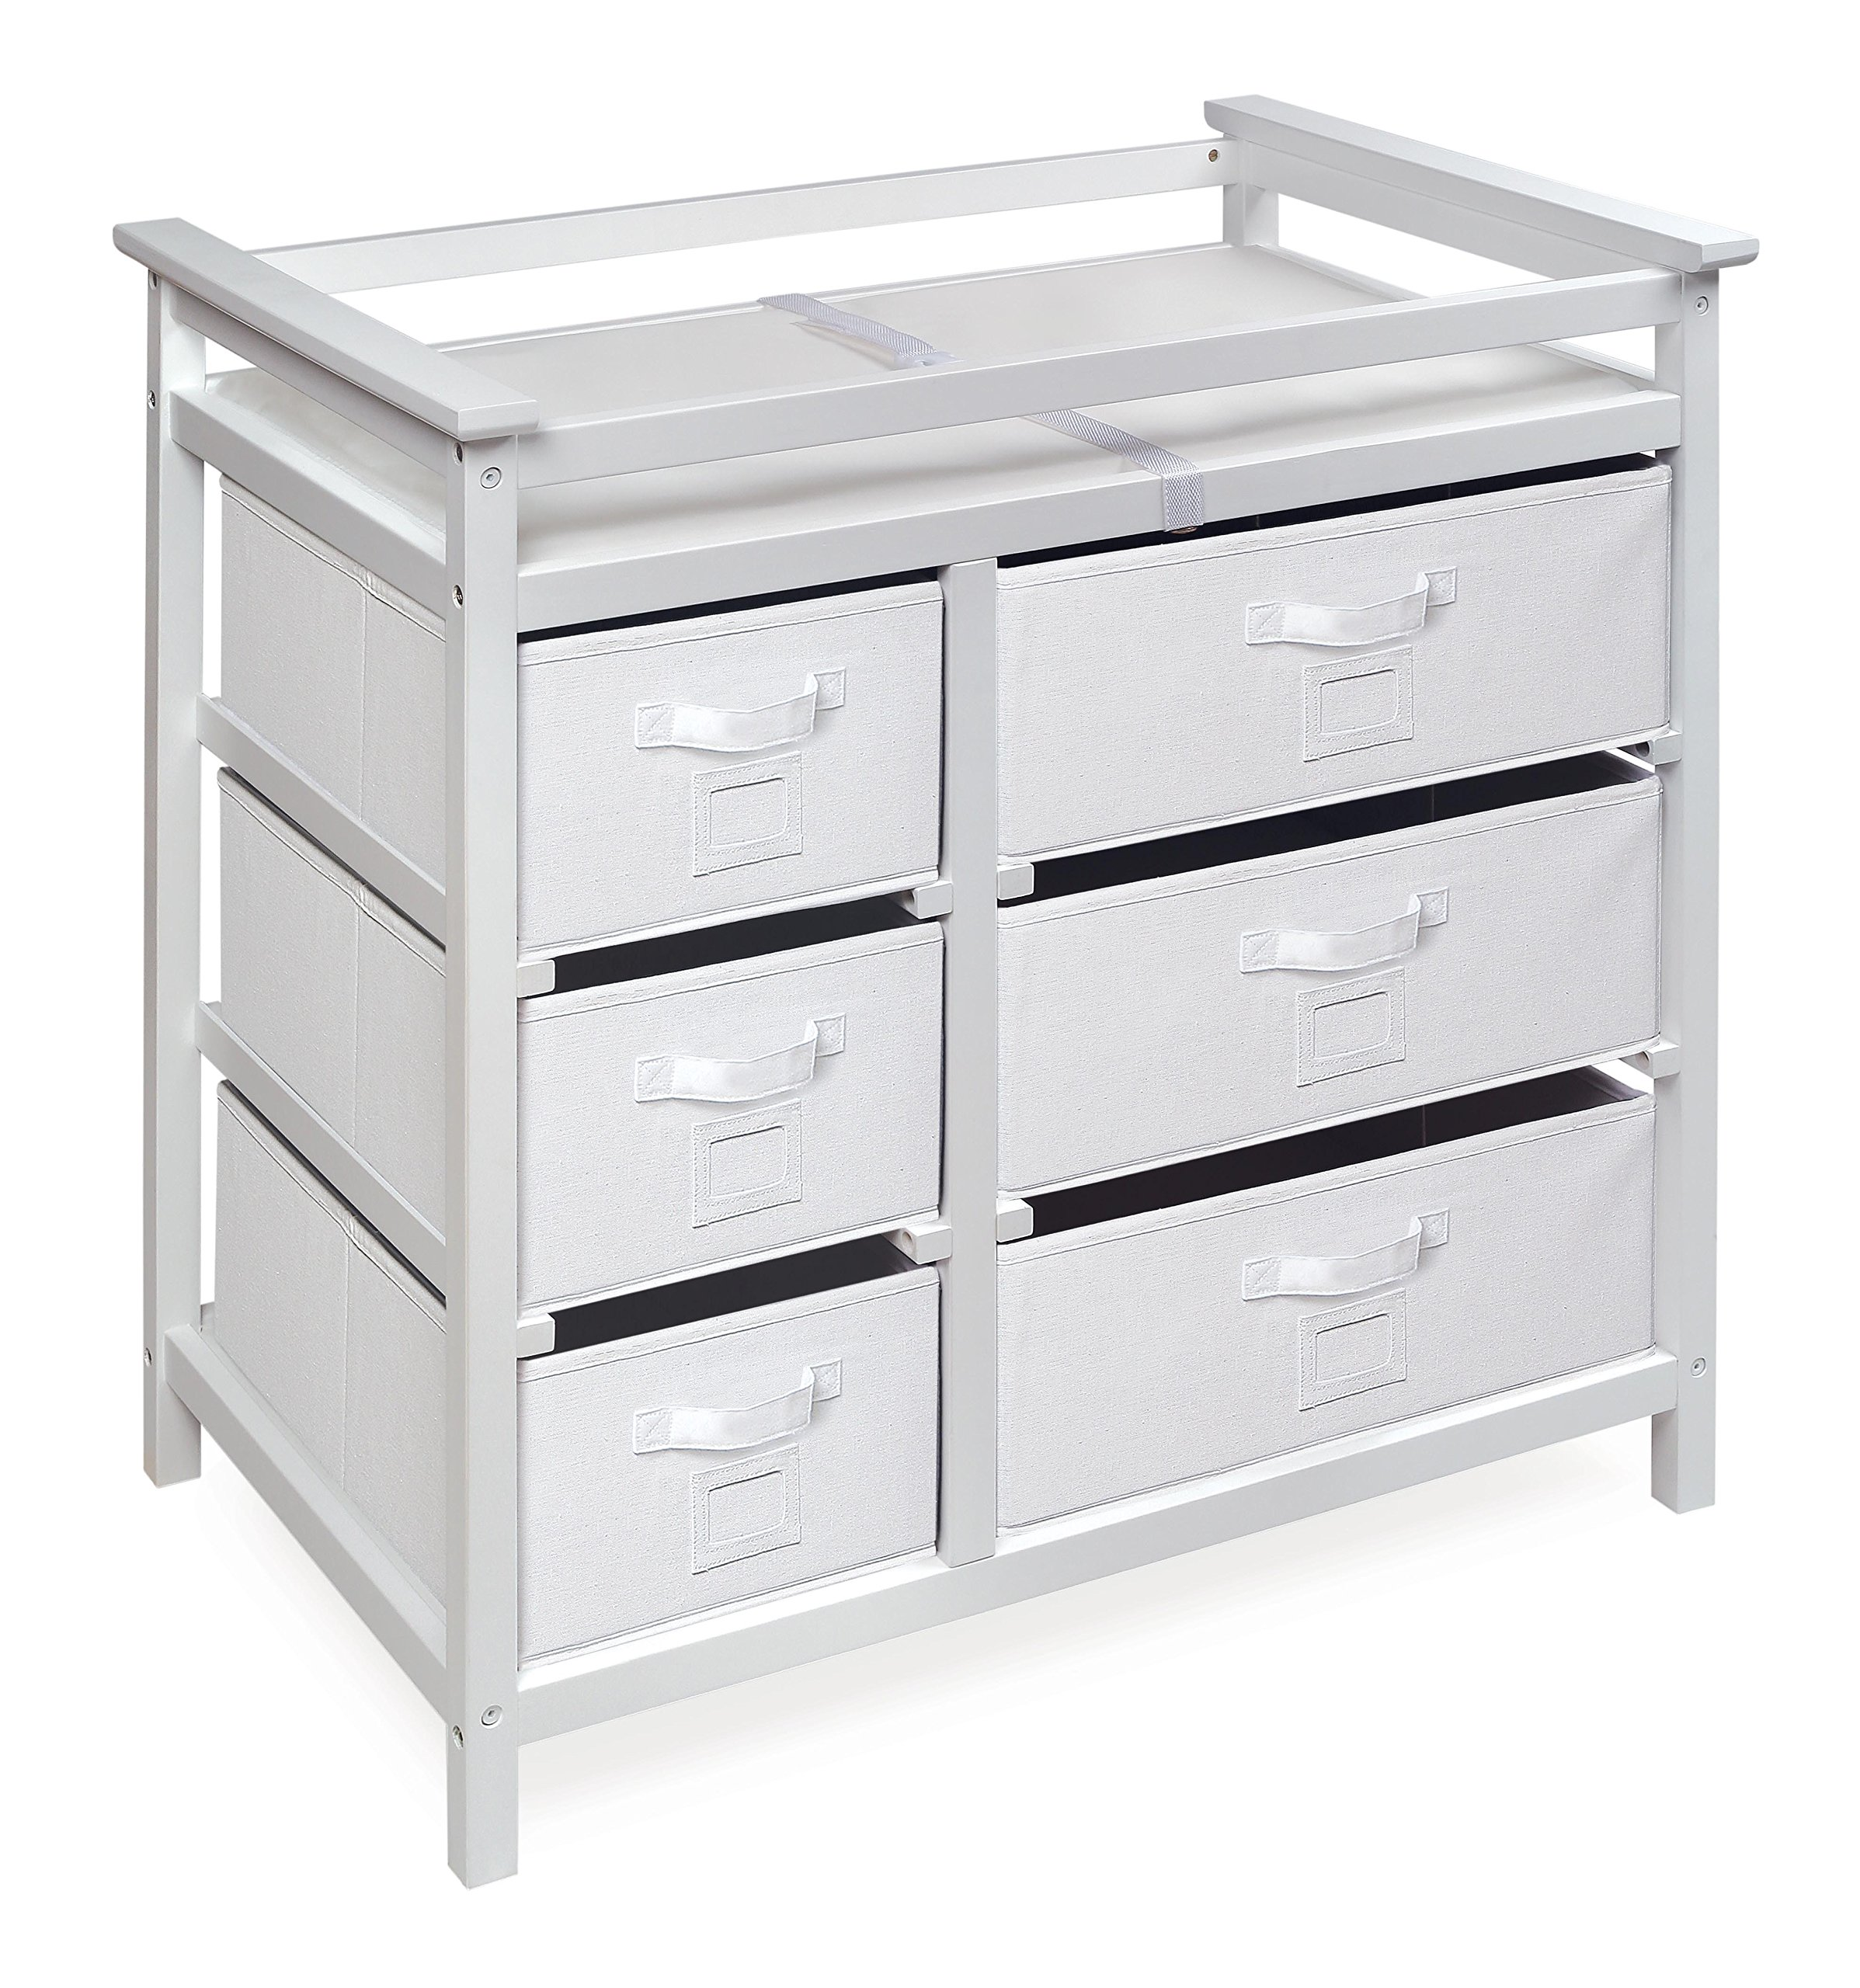 Modern Baby Changing Table with 6 Storage Baskets and Pad by Badger Basket